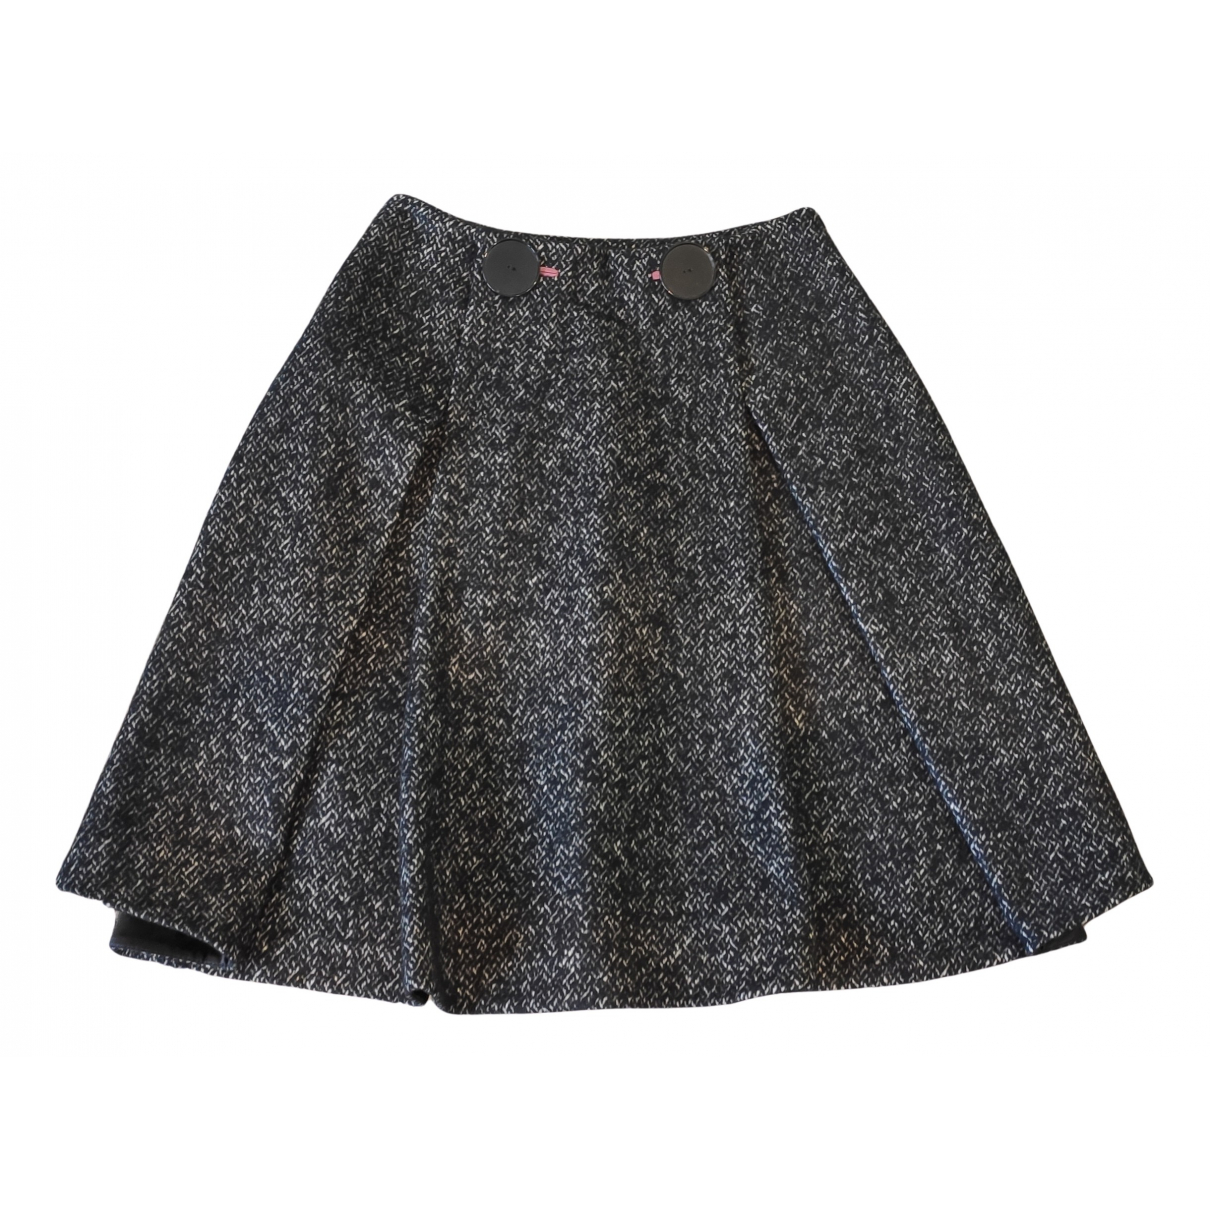 Paul Smith N Grey Wool skirt for Women 40 IT